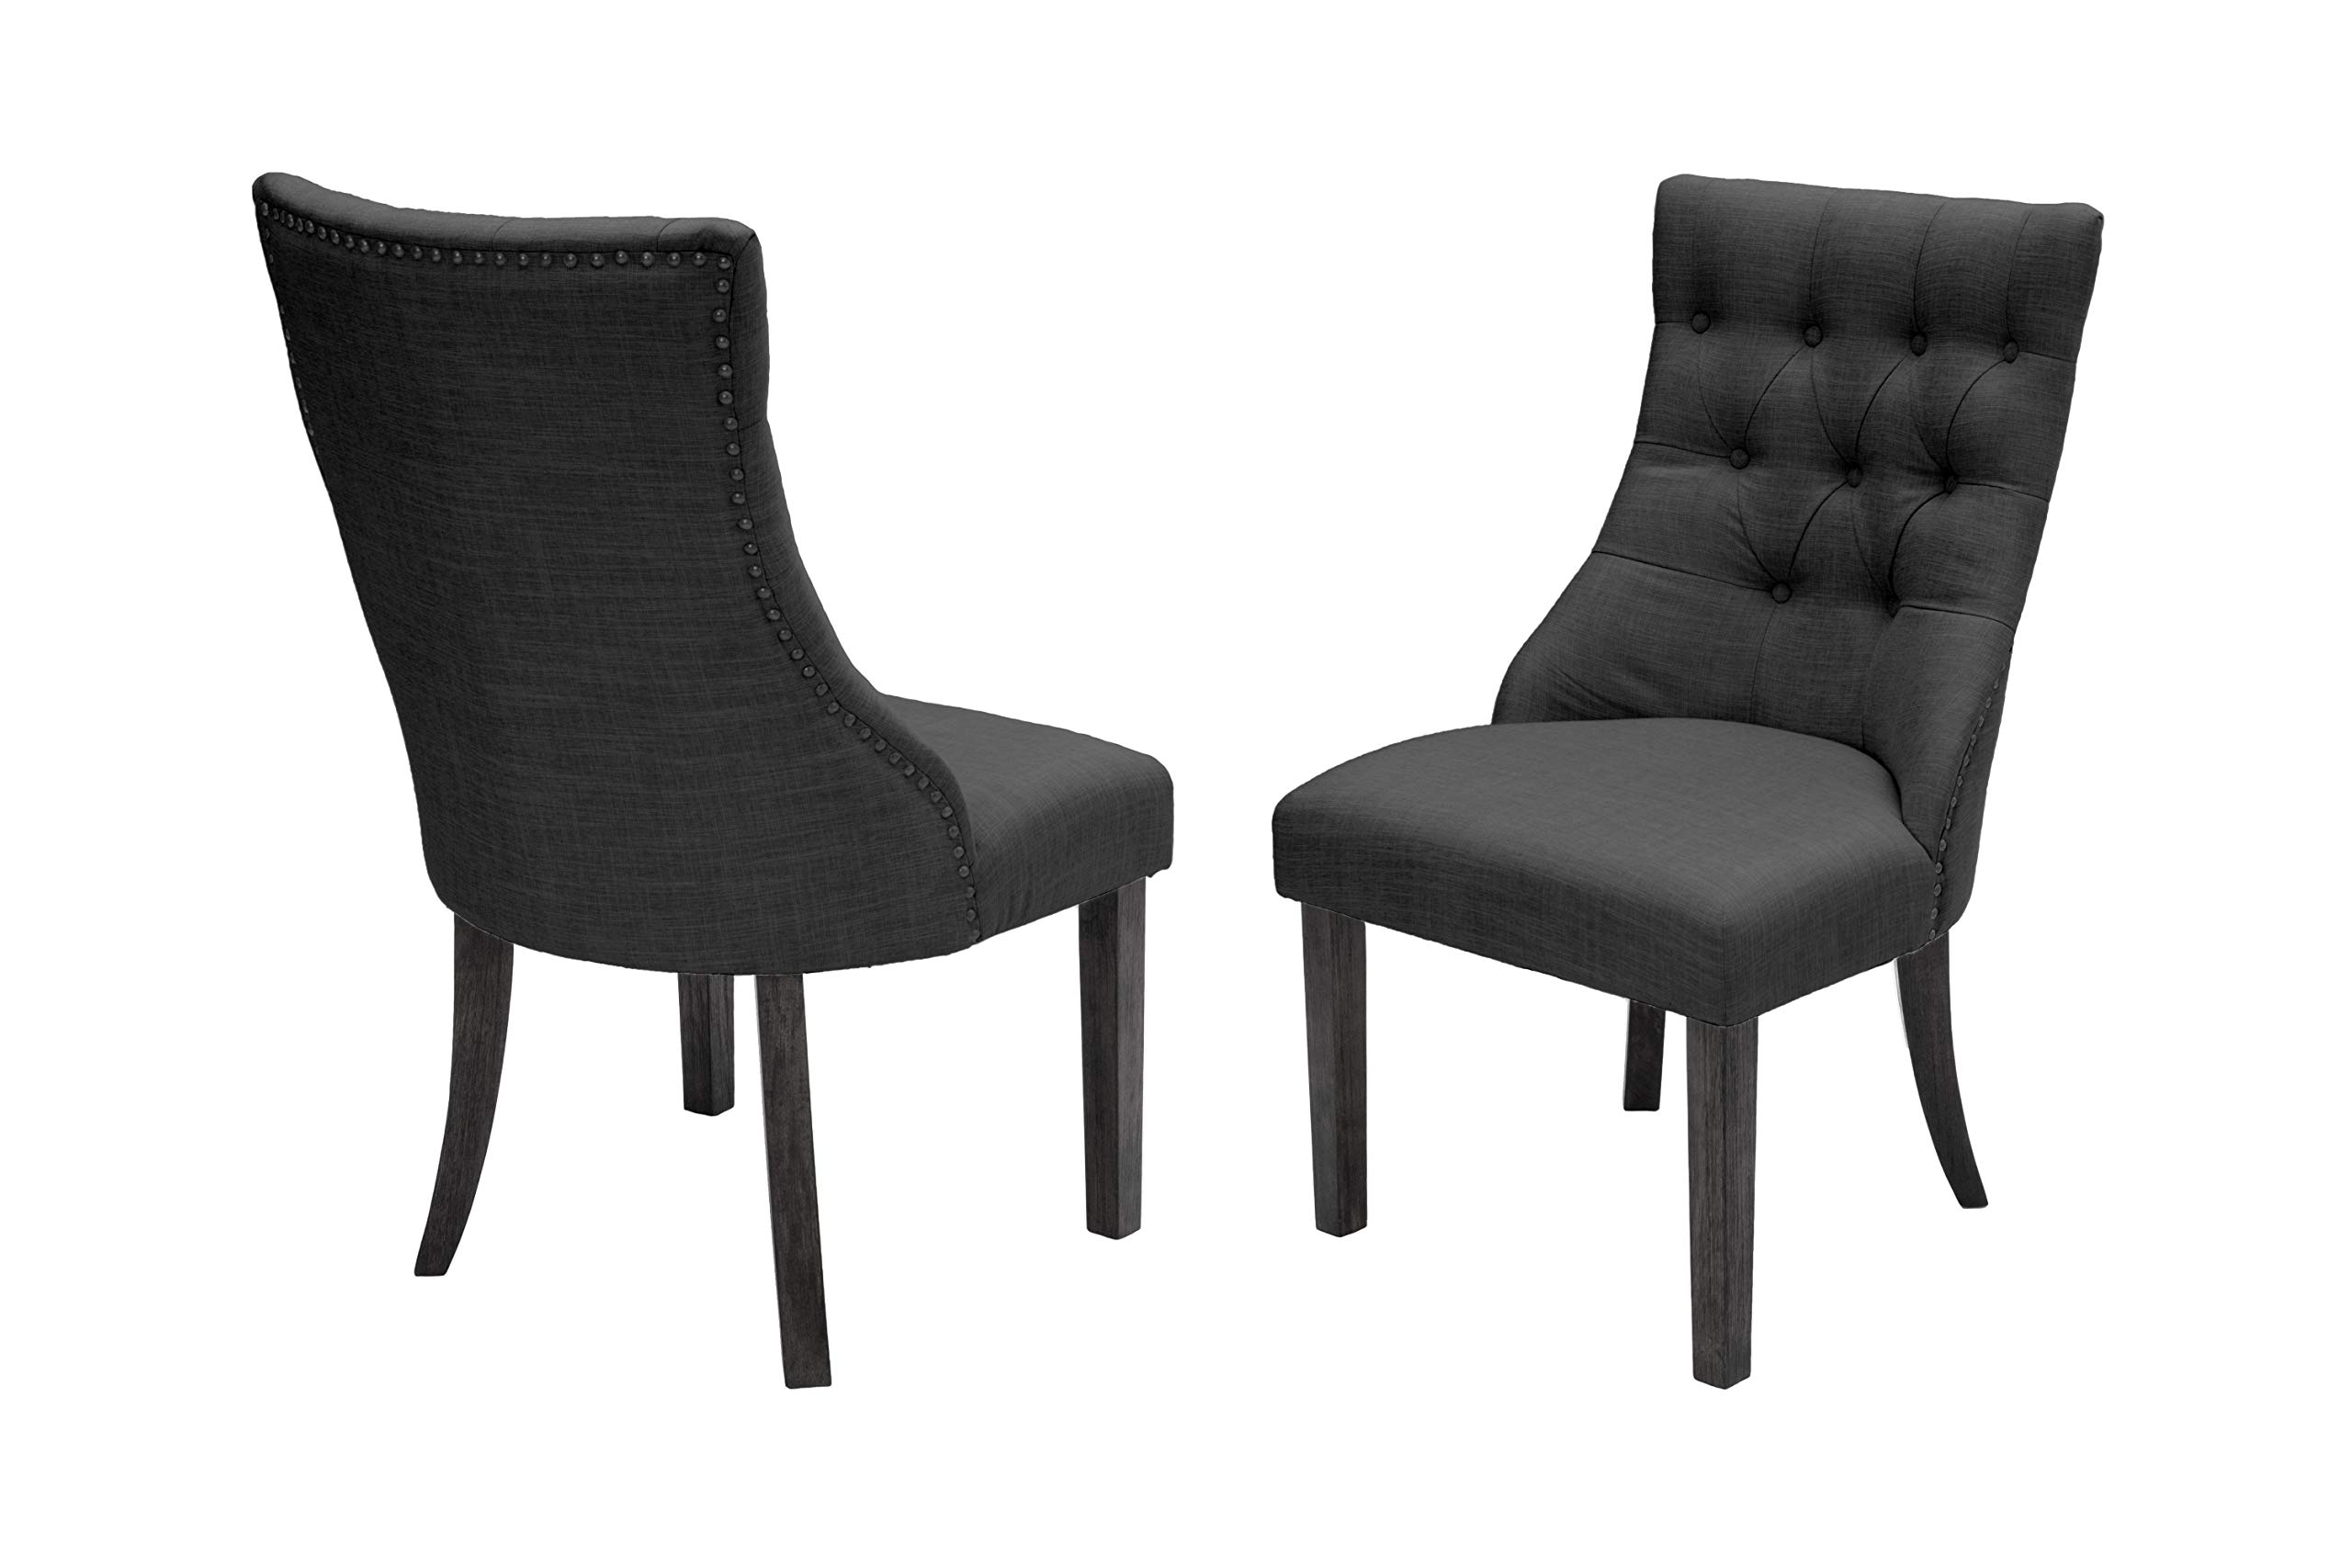 Best Quality Furniture Dining Chair, Black by Best Quality